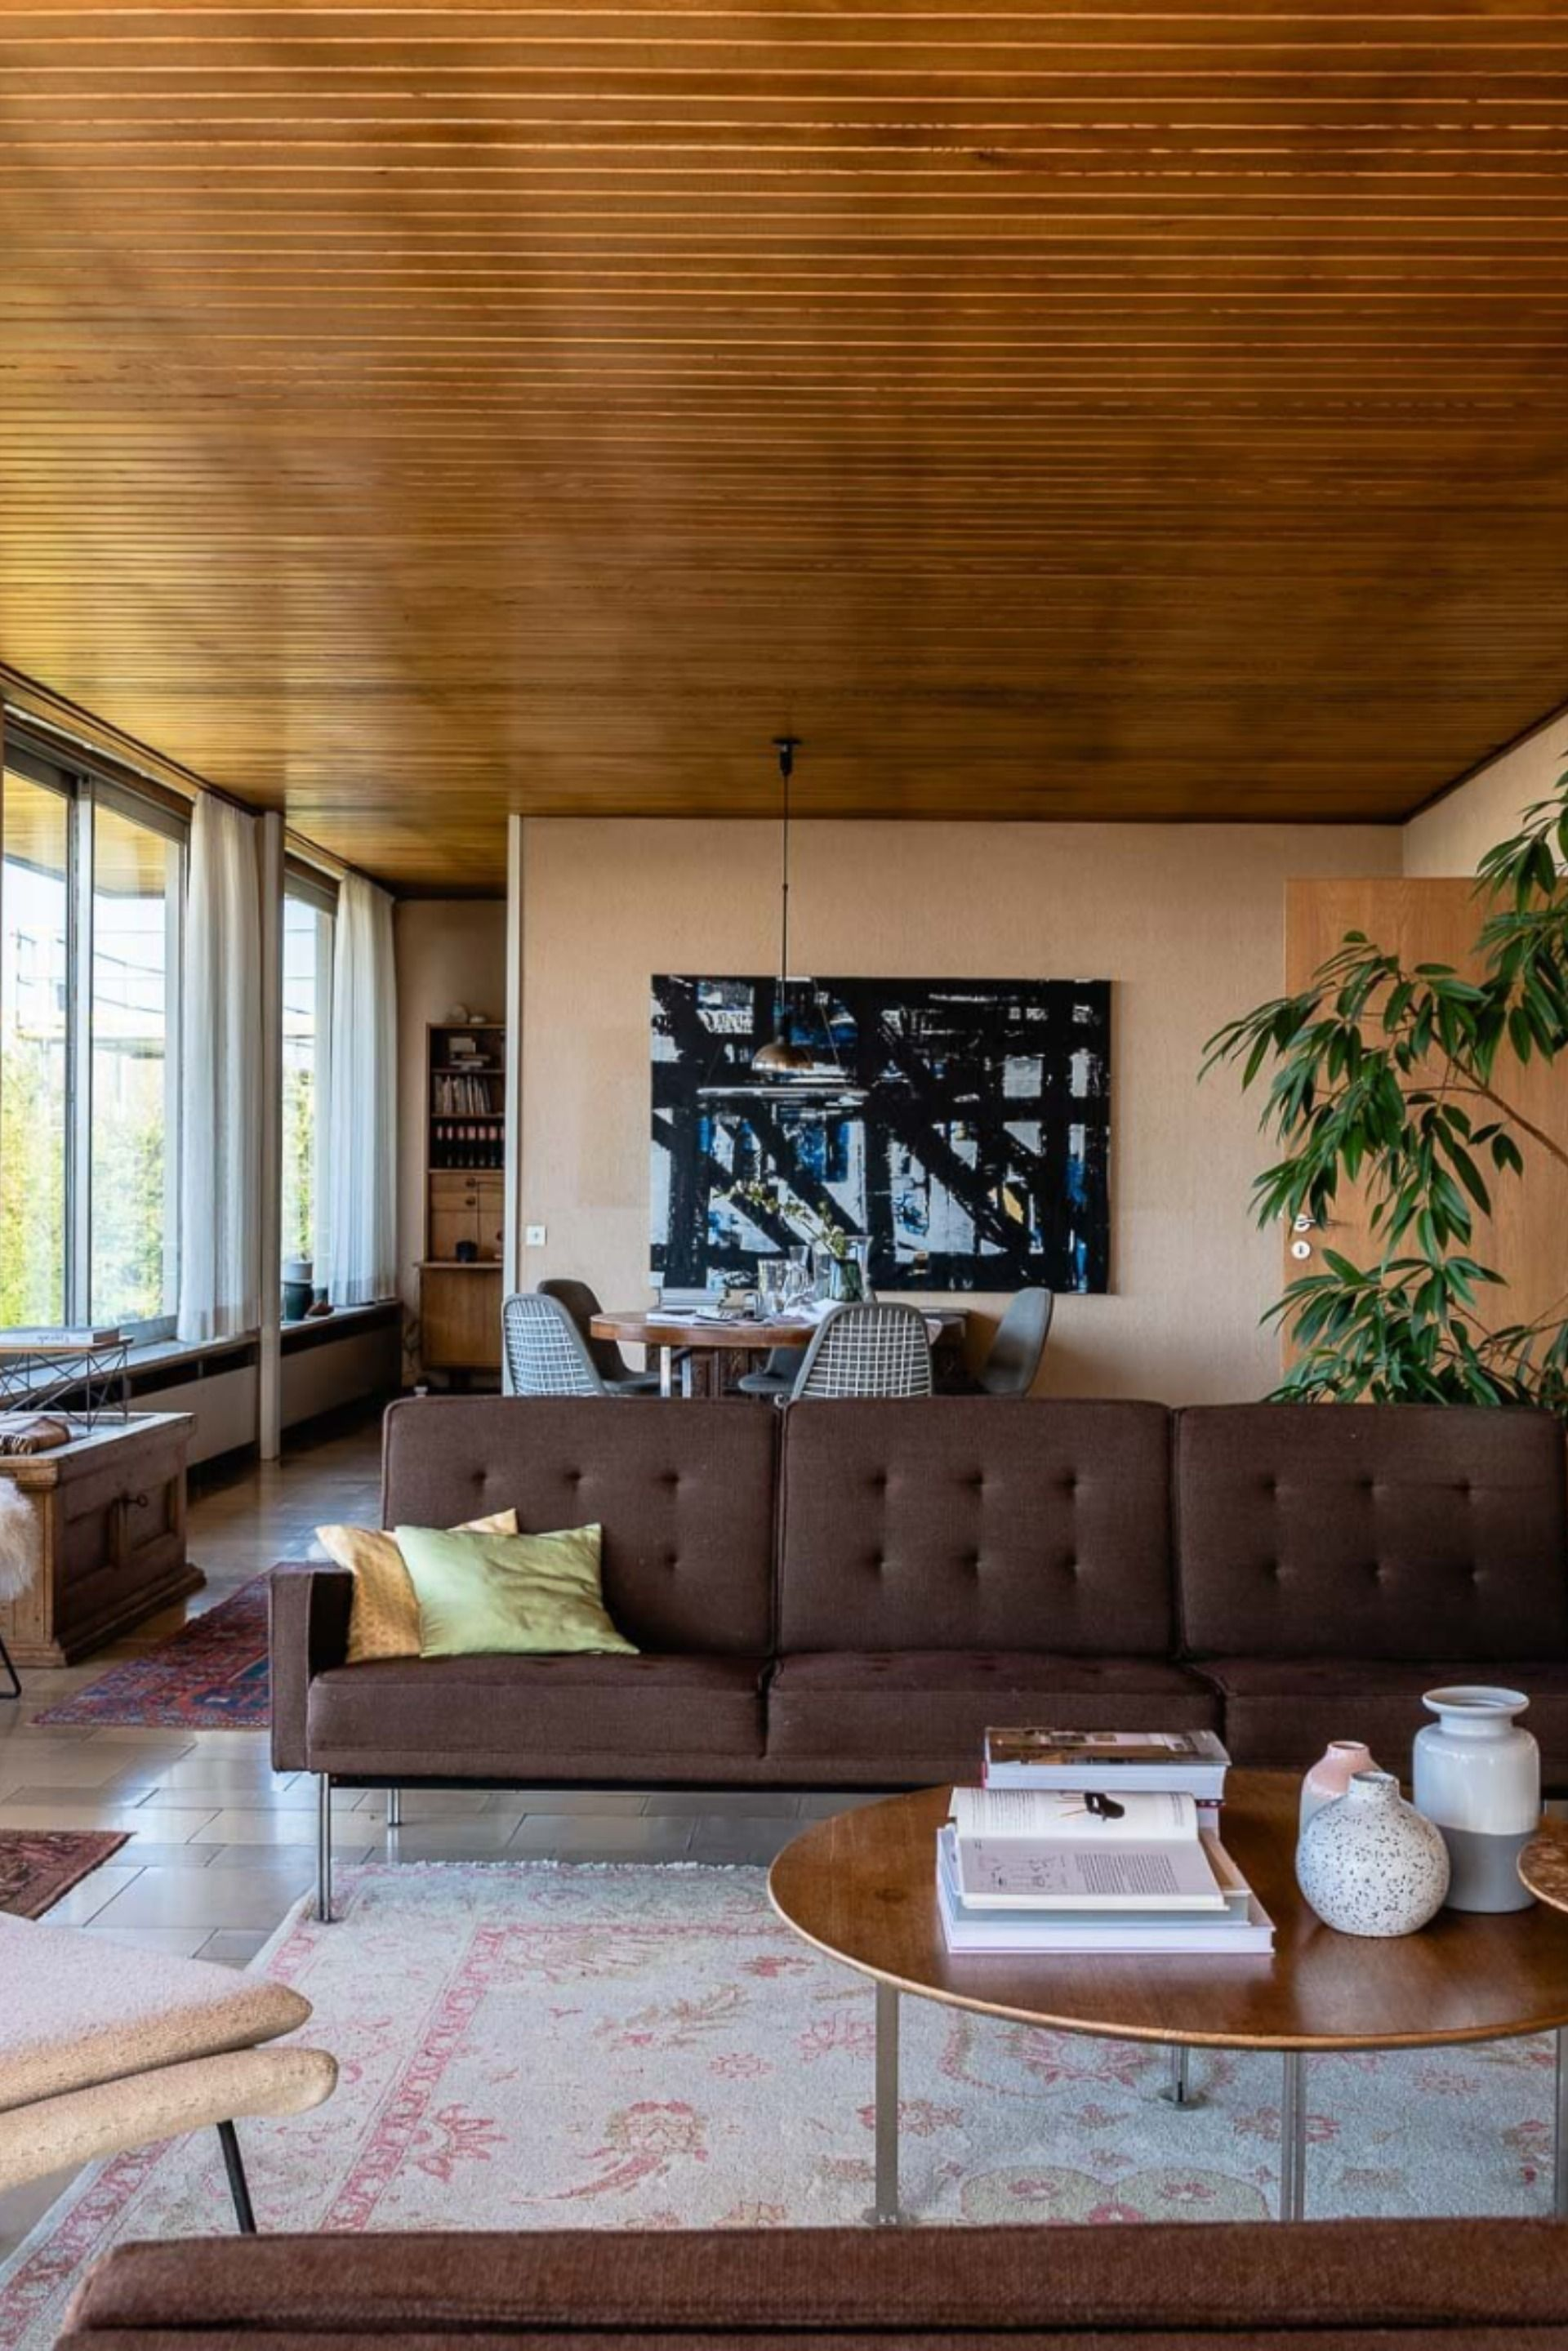 Post War Time Capsule By Jan And Waldemar Lippert Lists In Germany S Weinheim The Spaces In 2020 Bauhaus Interior German Interior Design Modern Interior Decor